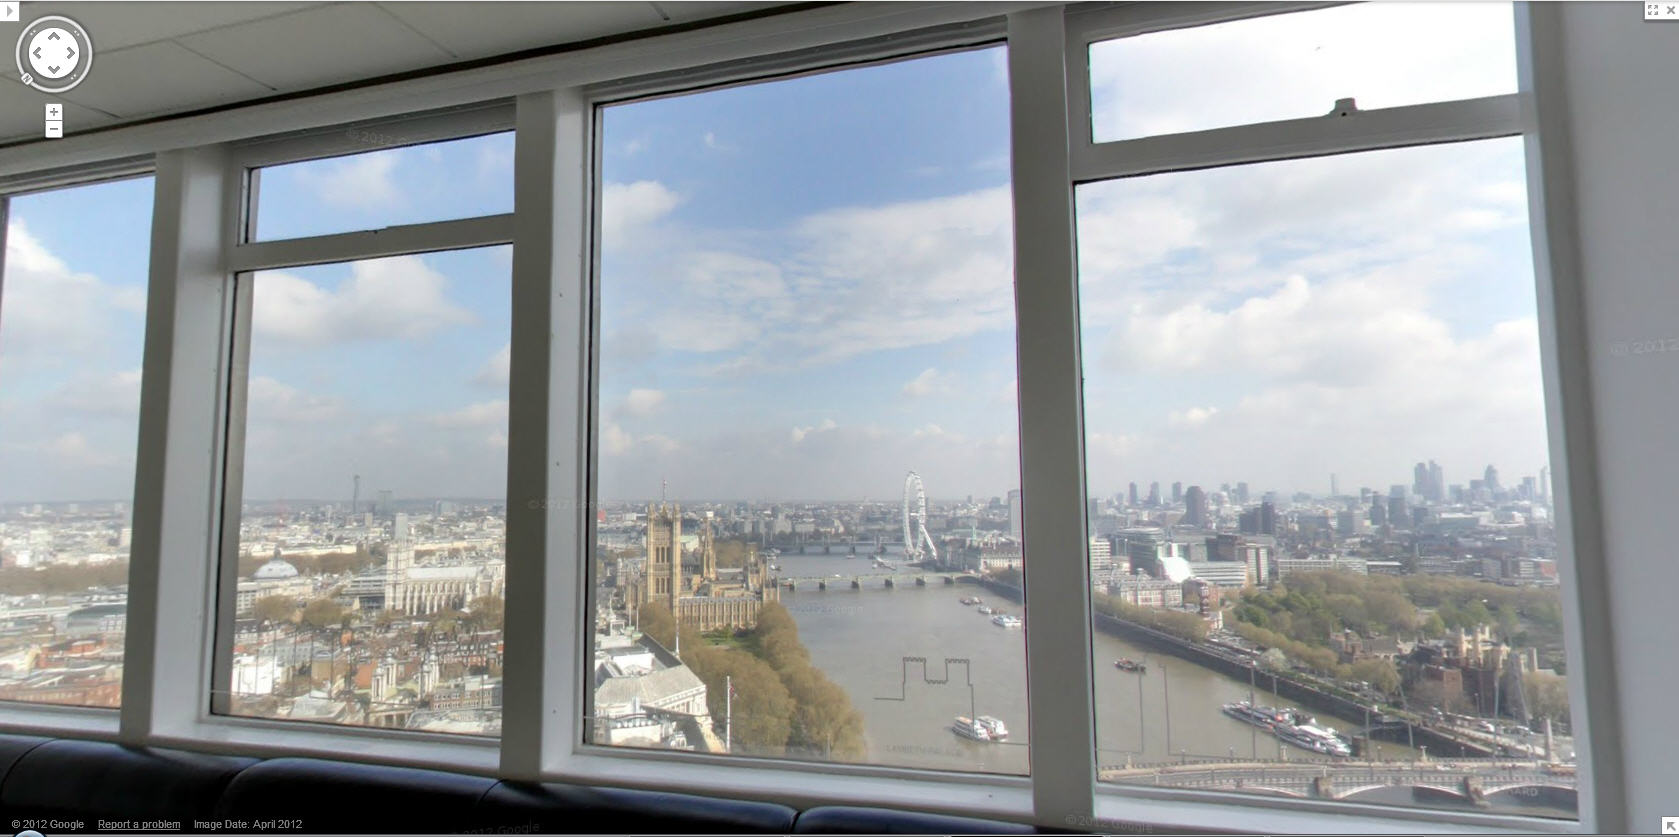 google-street-view-goes-inside-at-altitude-360-in-london-uk